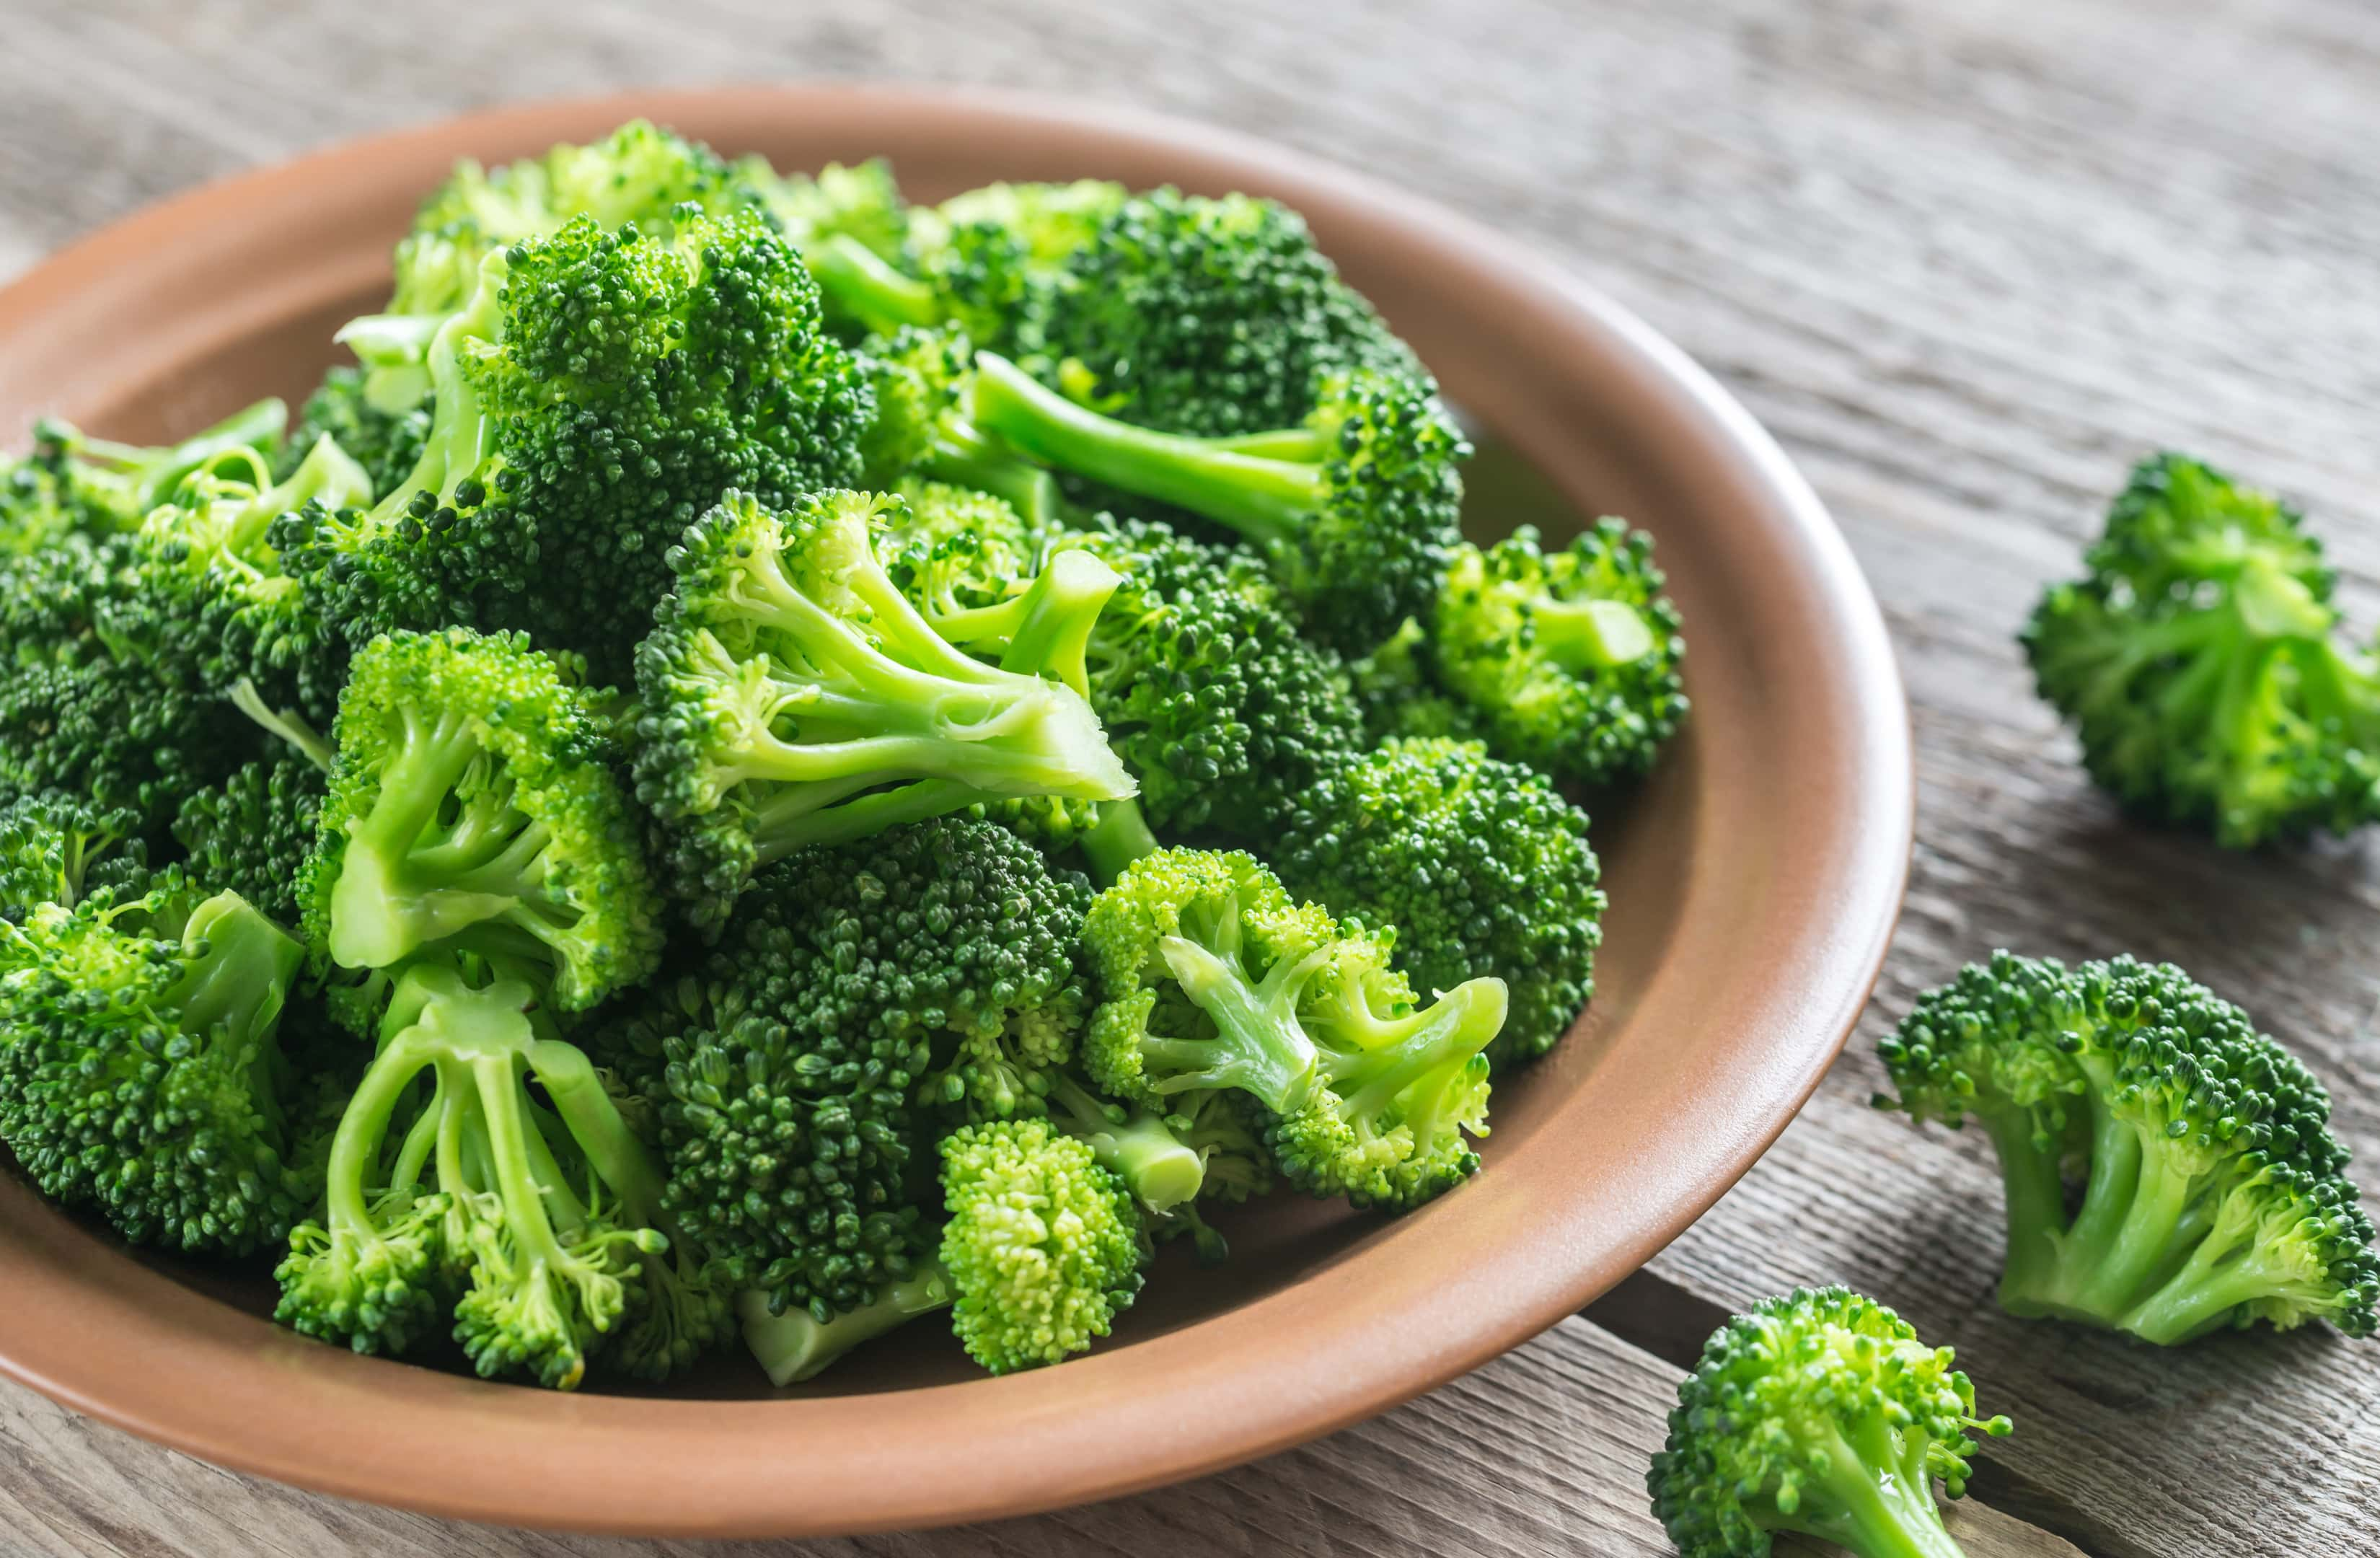 Cooked broccoli plate on wooden table